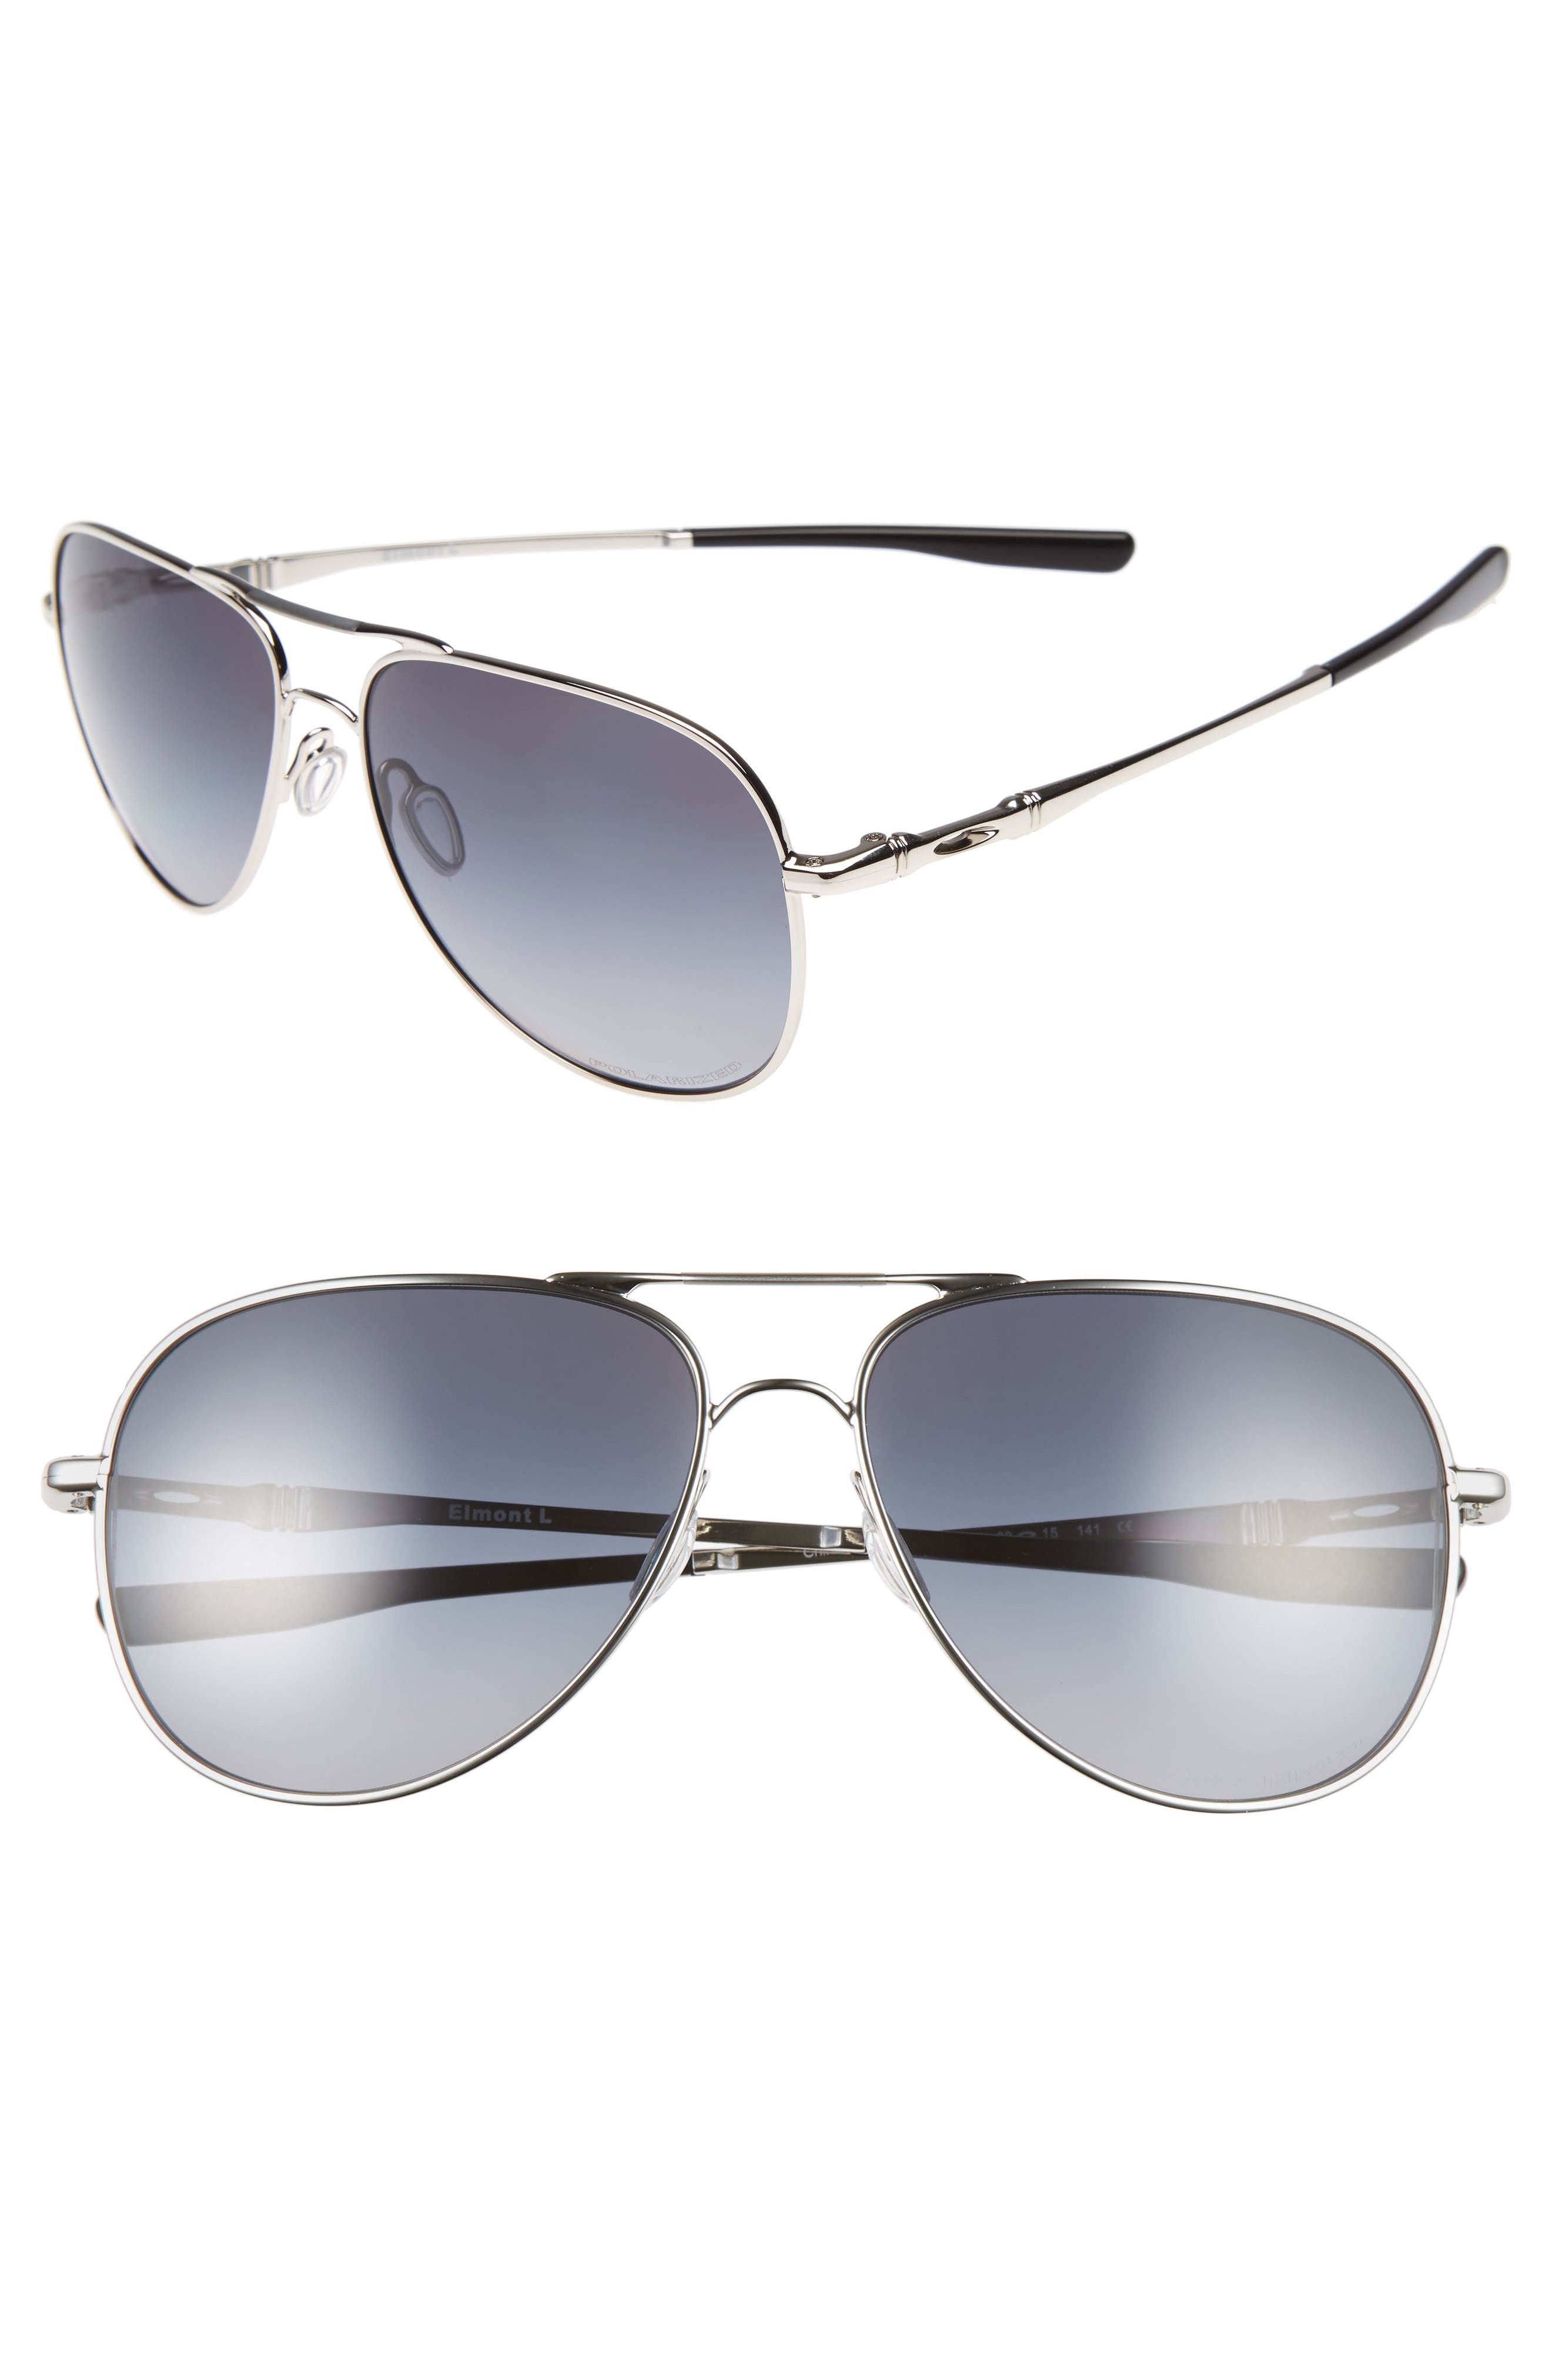 Elmont 61mm Polarized Aviator Sunglasses,                         Main,                         color, SILVER